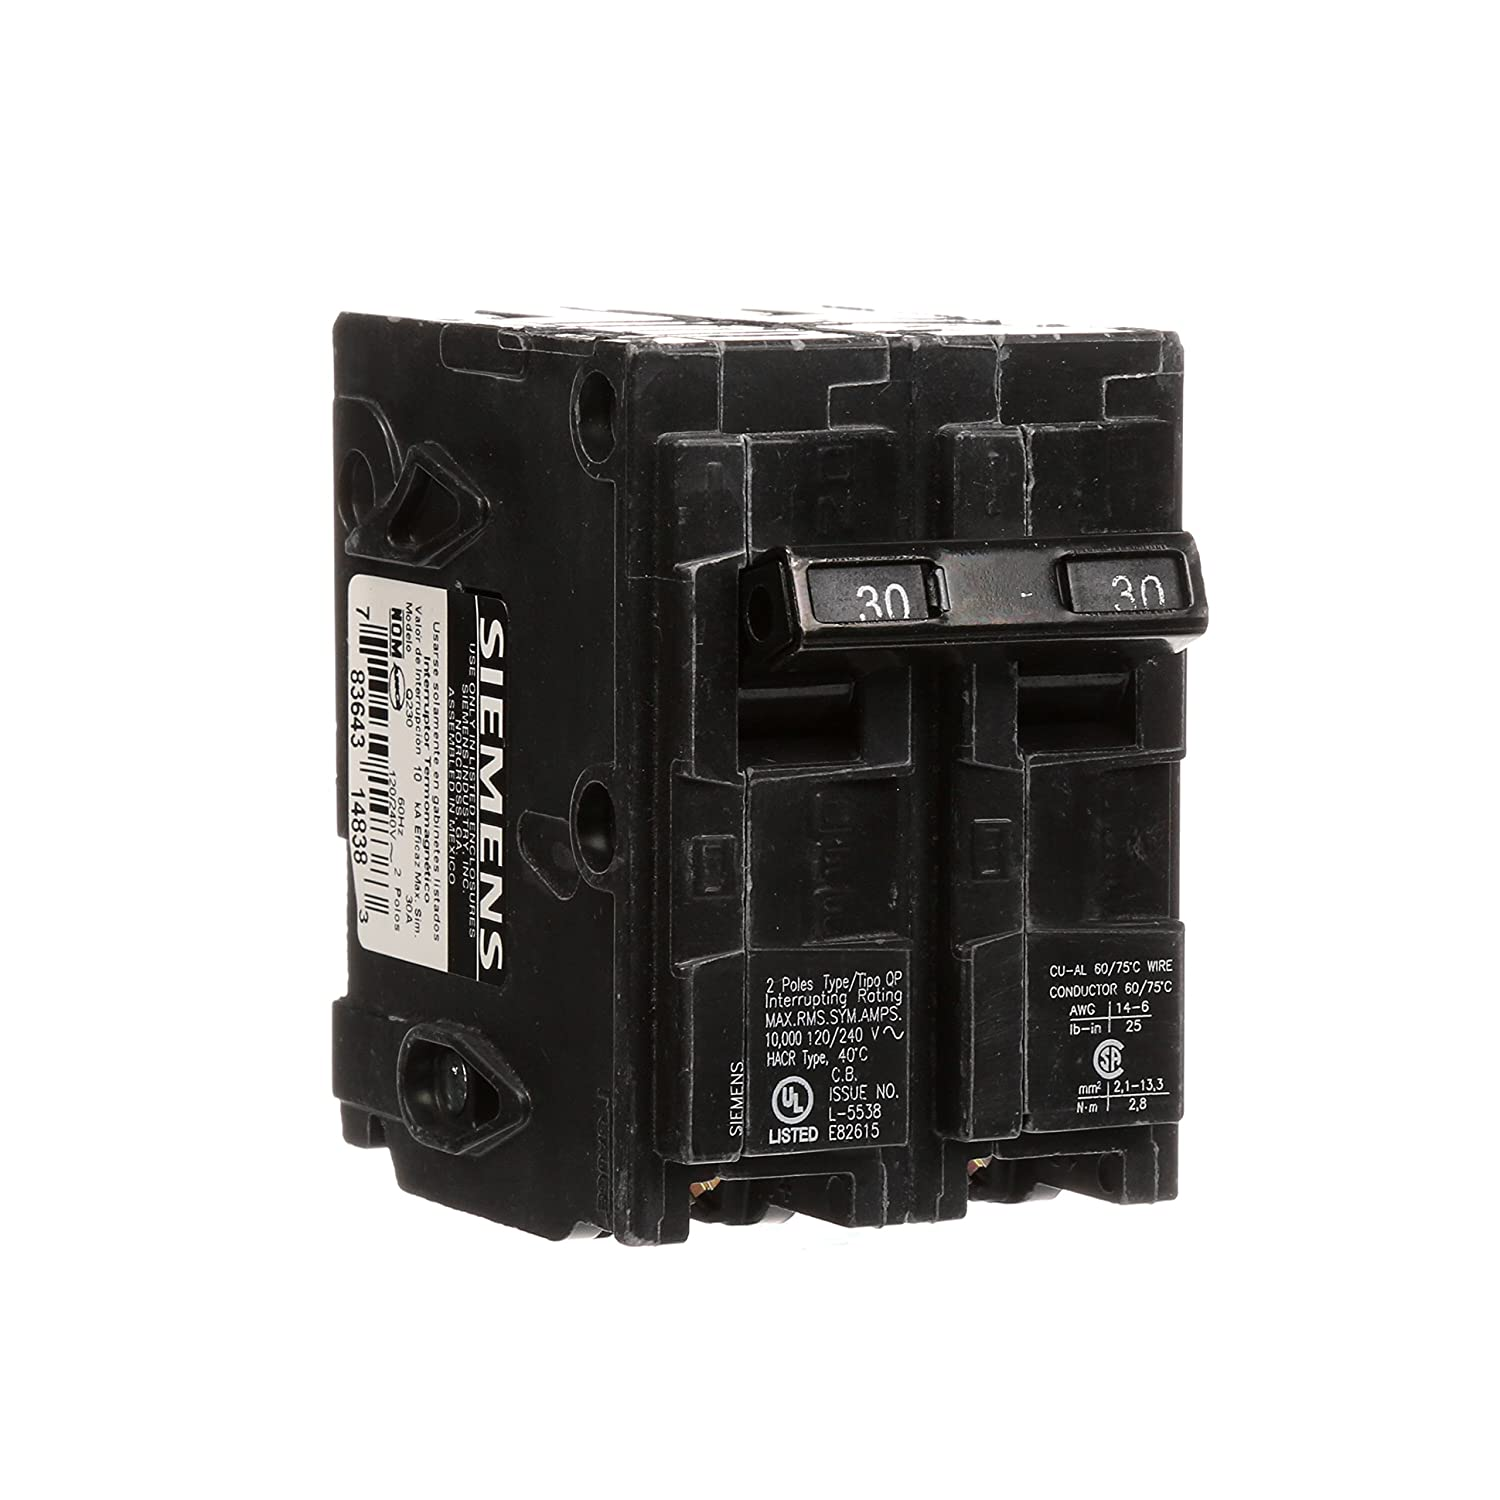 Q230 30 Amp Double Pole Type Qp Circuit Breaker How To Find